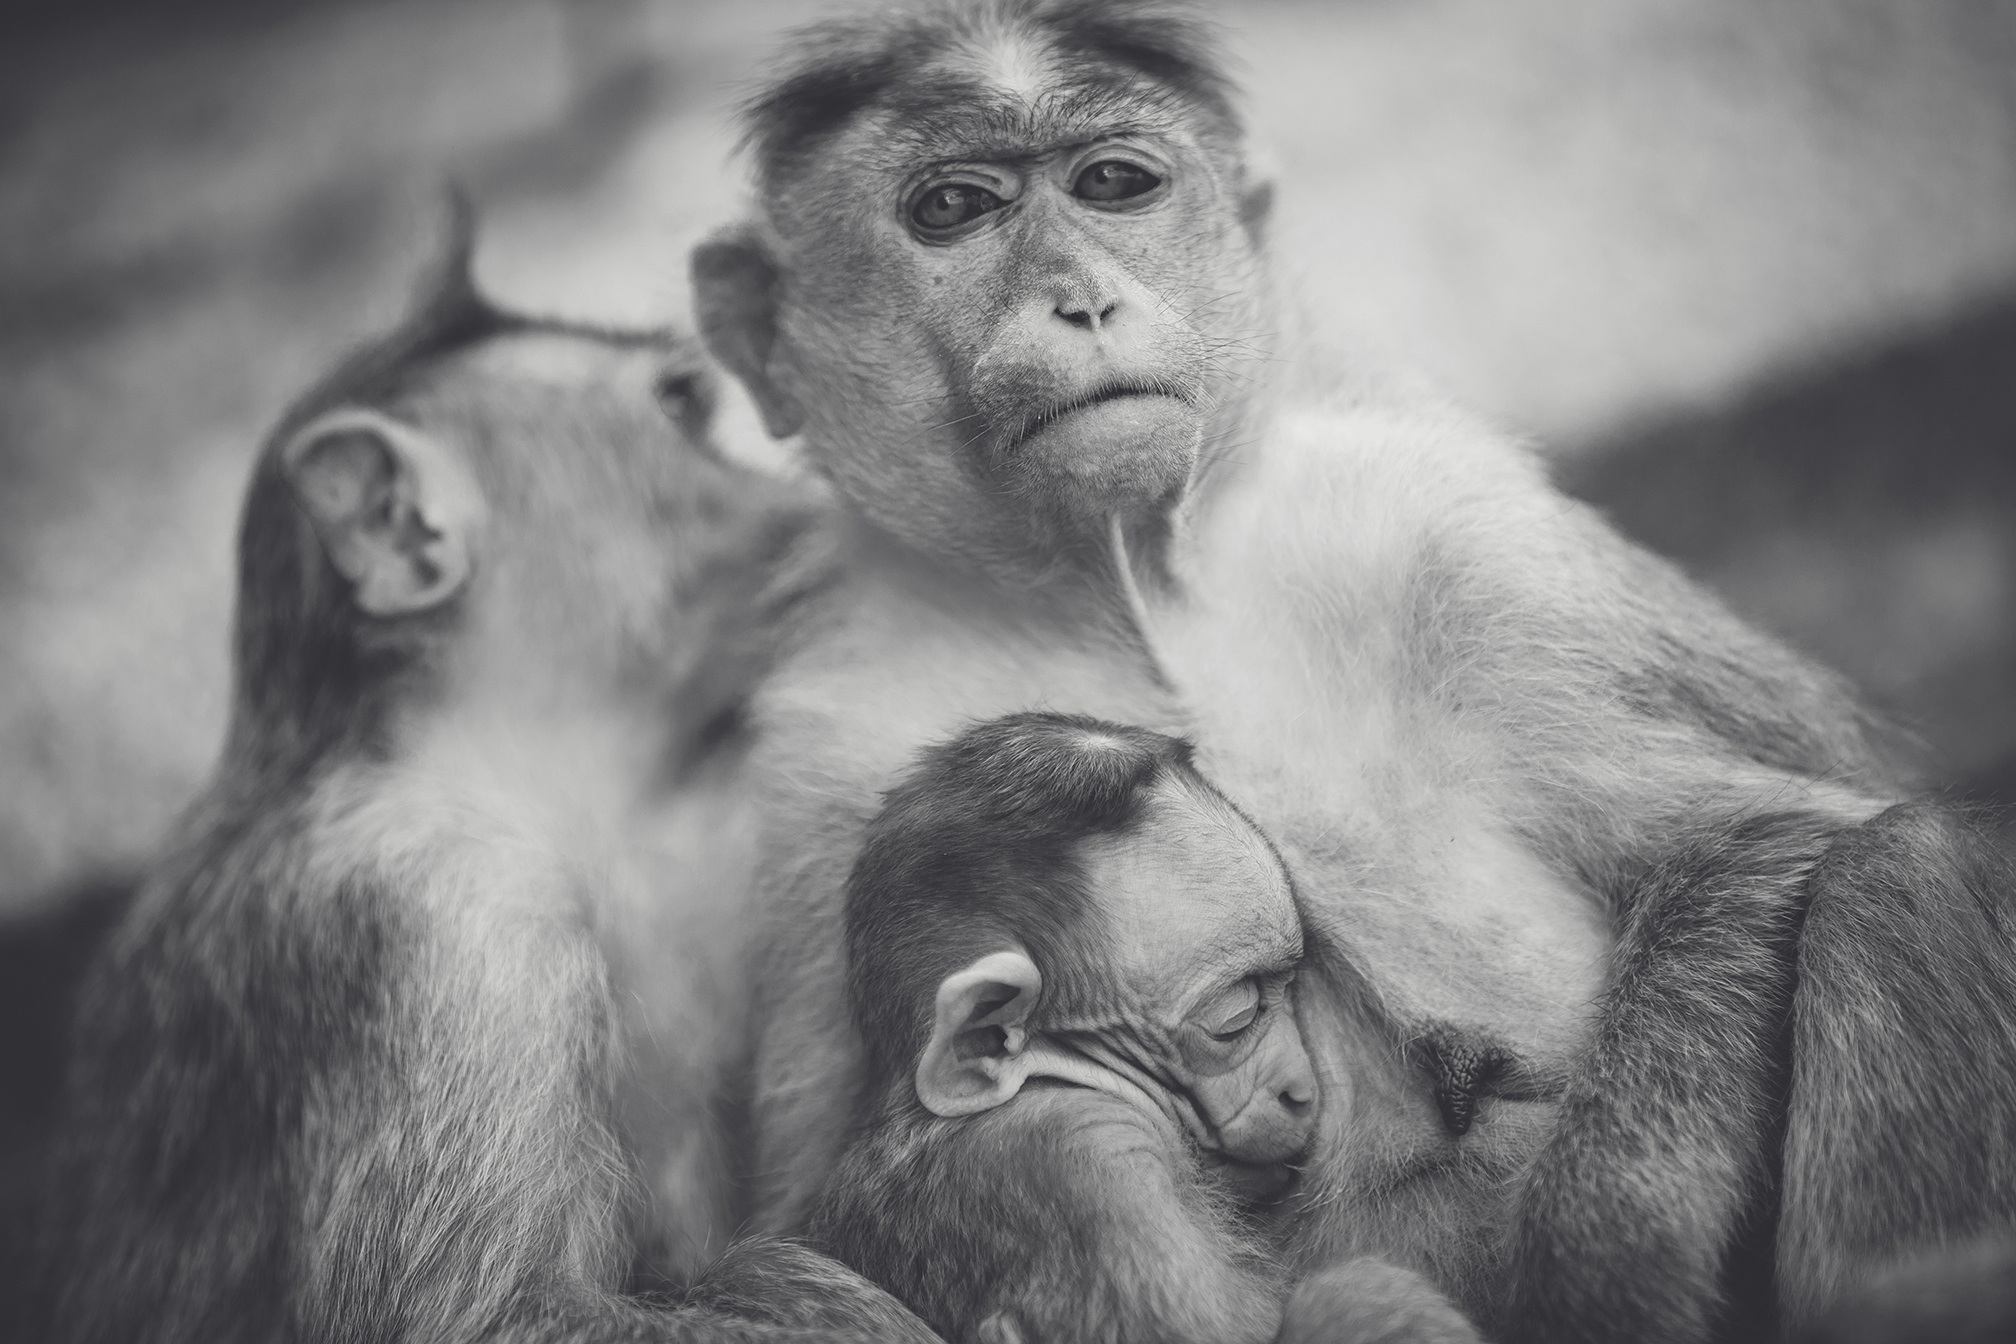 86129 Screensavers and Wallpapers Monkeys for phone. Download Animals, Monkeys, Young, Bw, Chb, Joey pictures for free